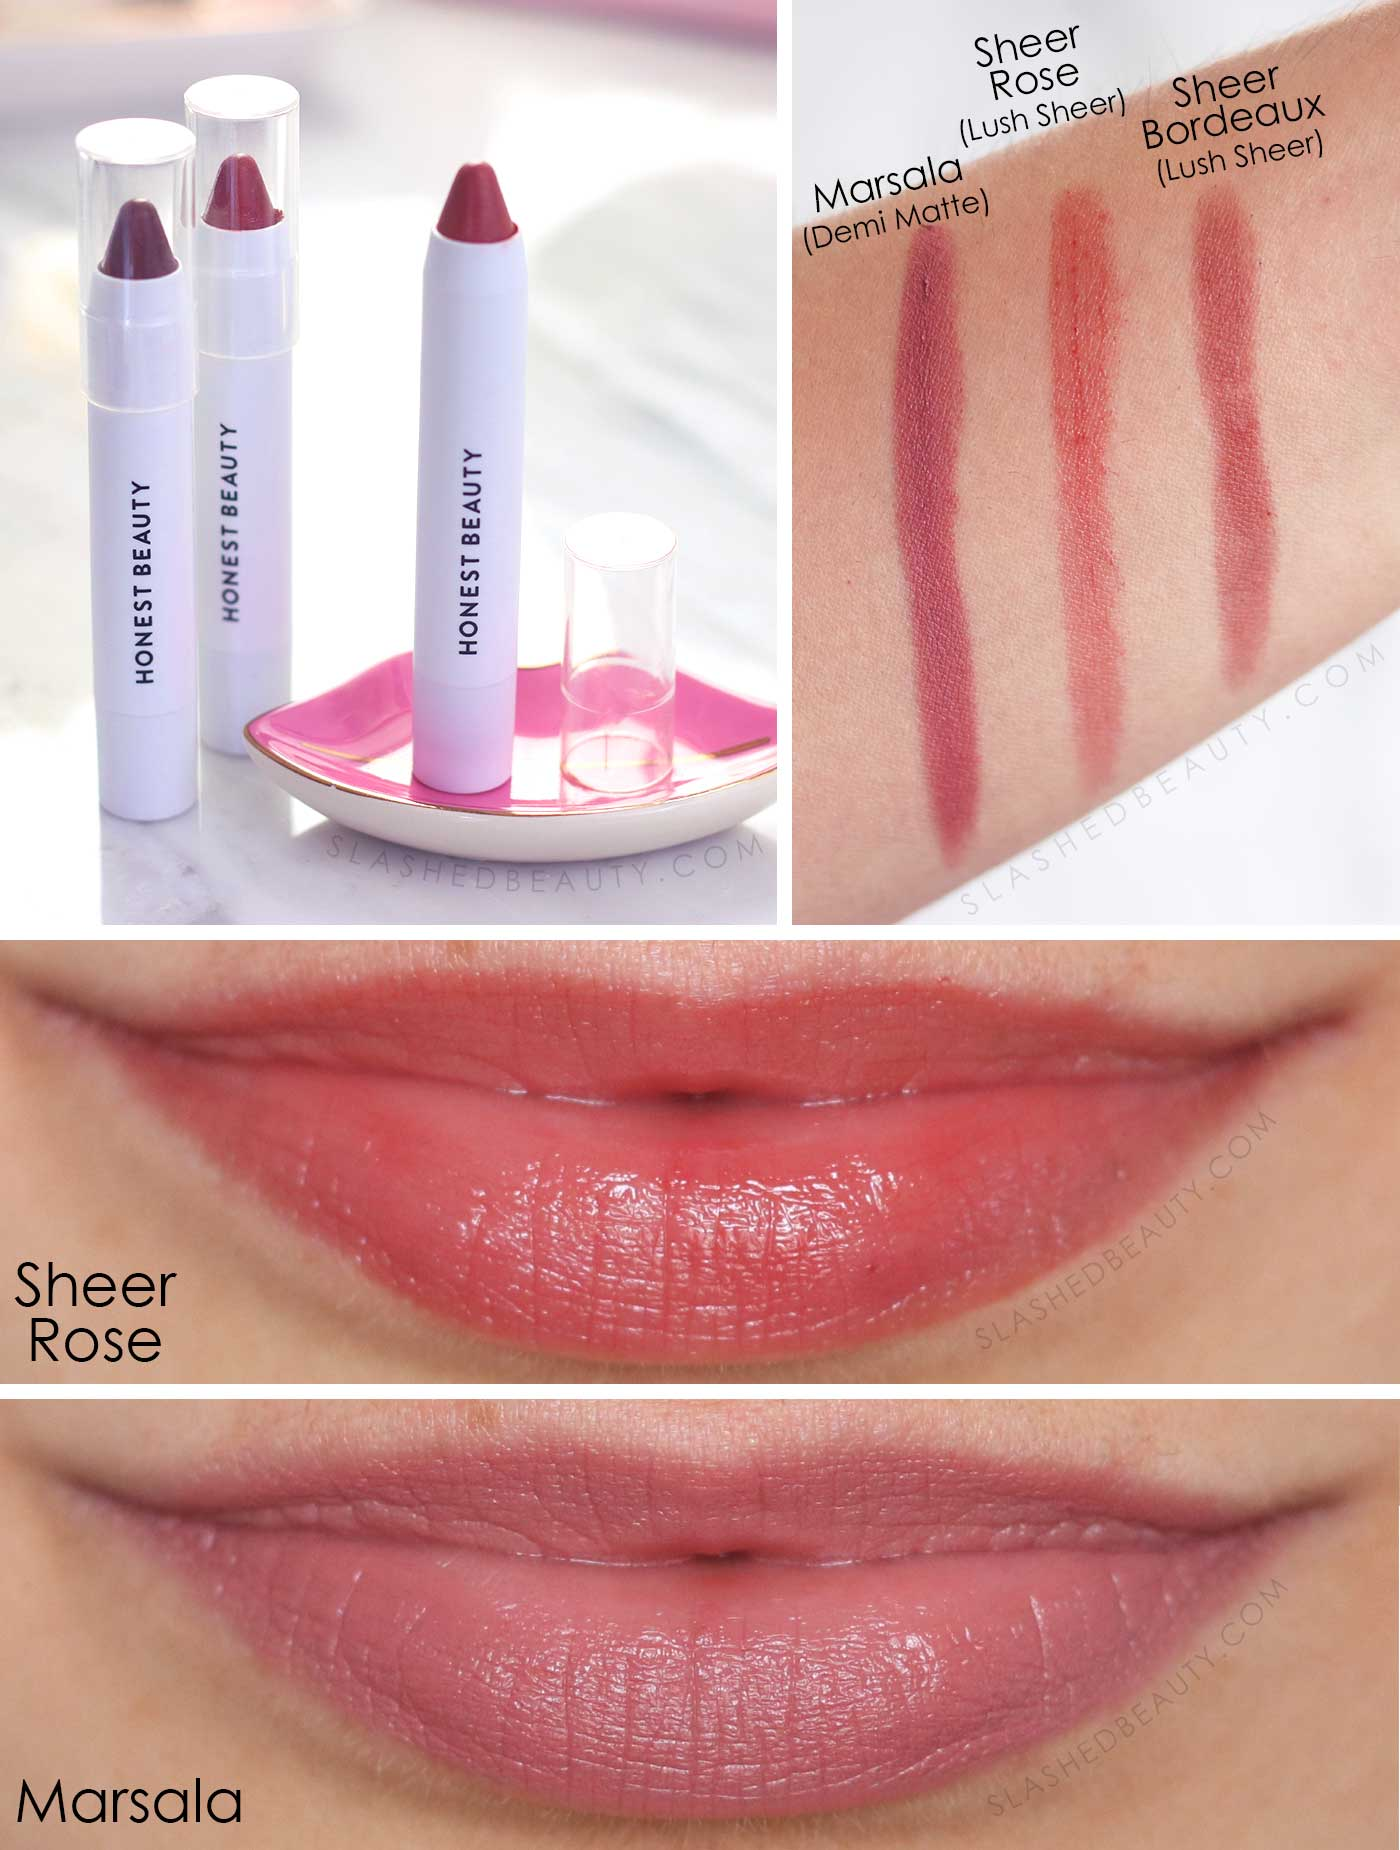 Honest Beauty Lip Crayon Swatches | Marsala, Sheer Rose, Sheer Bordeaux | 5 Best Drugstore Tinted Lip Balms | Slashed Beauty